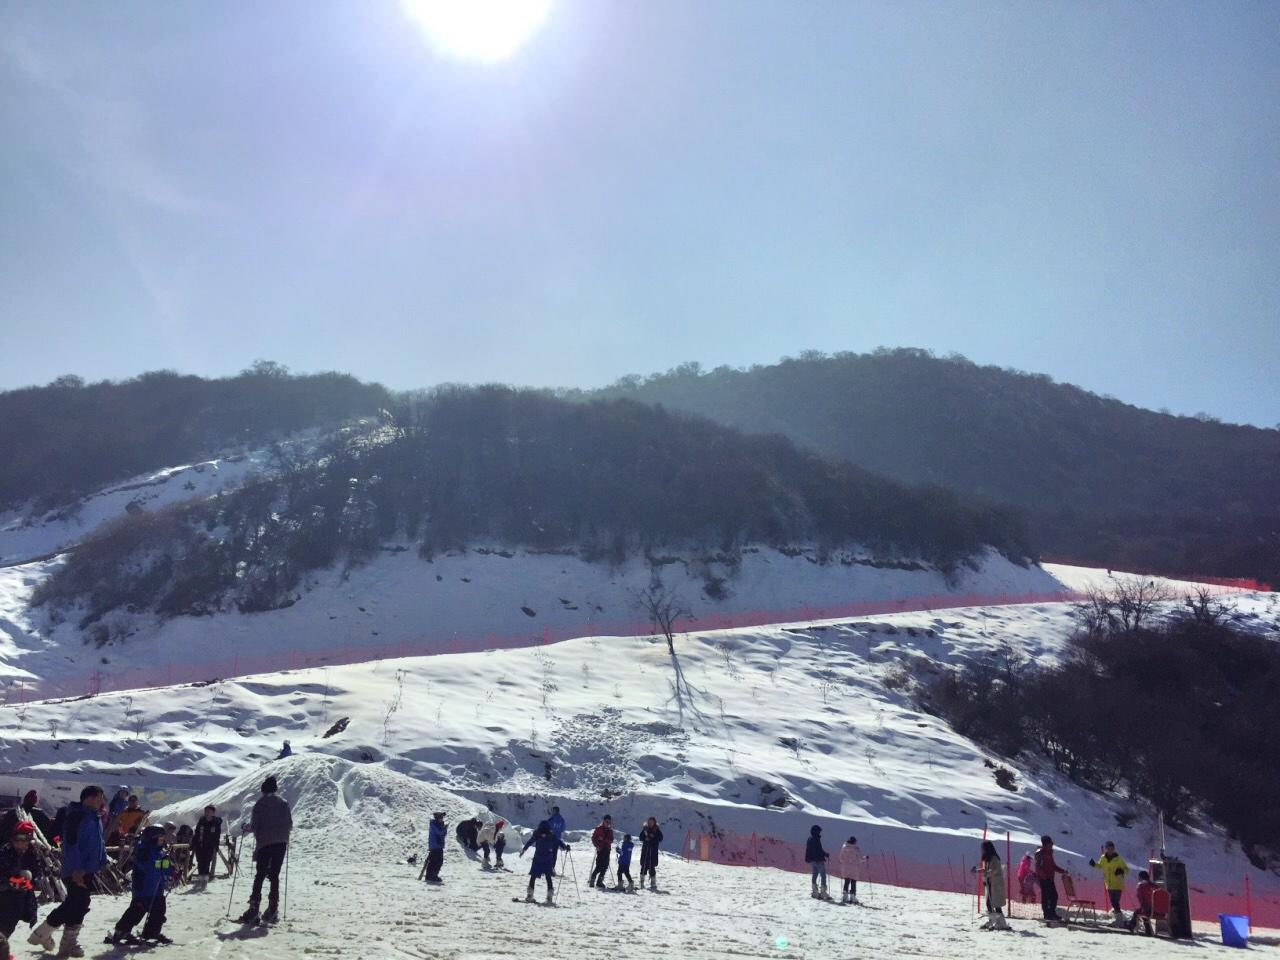 Taiziling Ski Resort